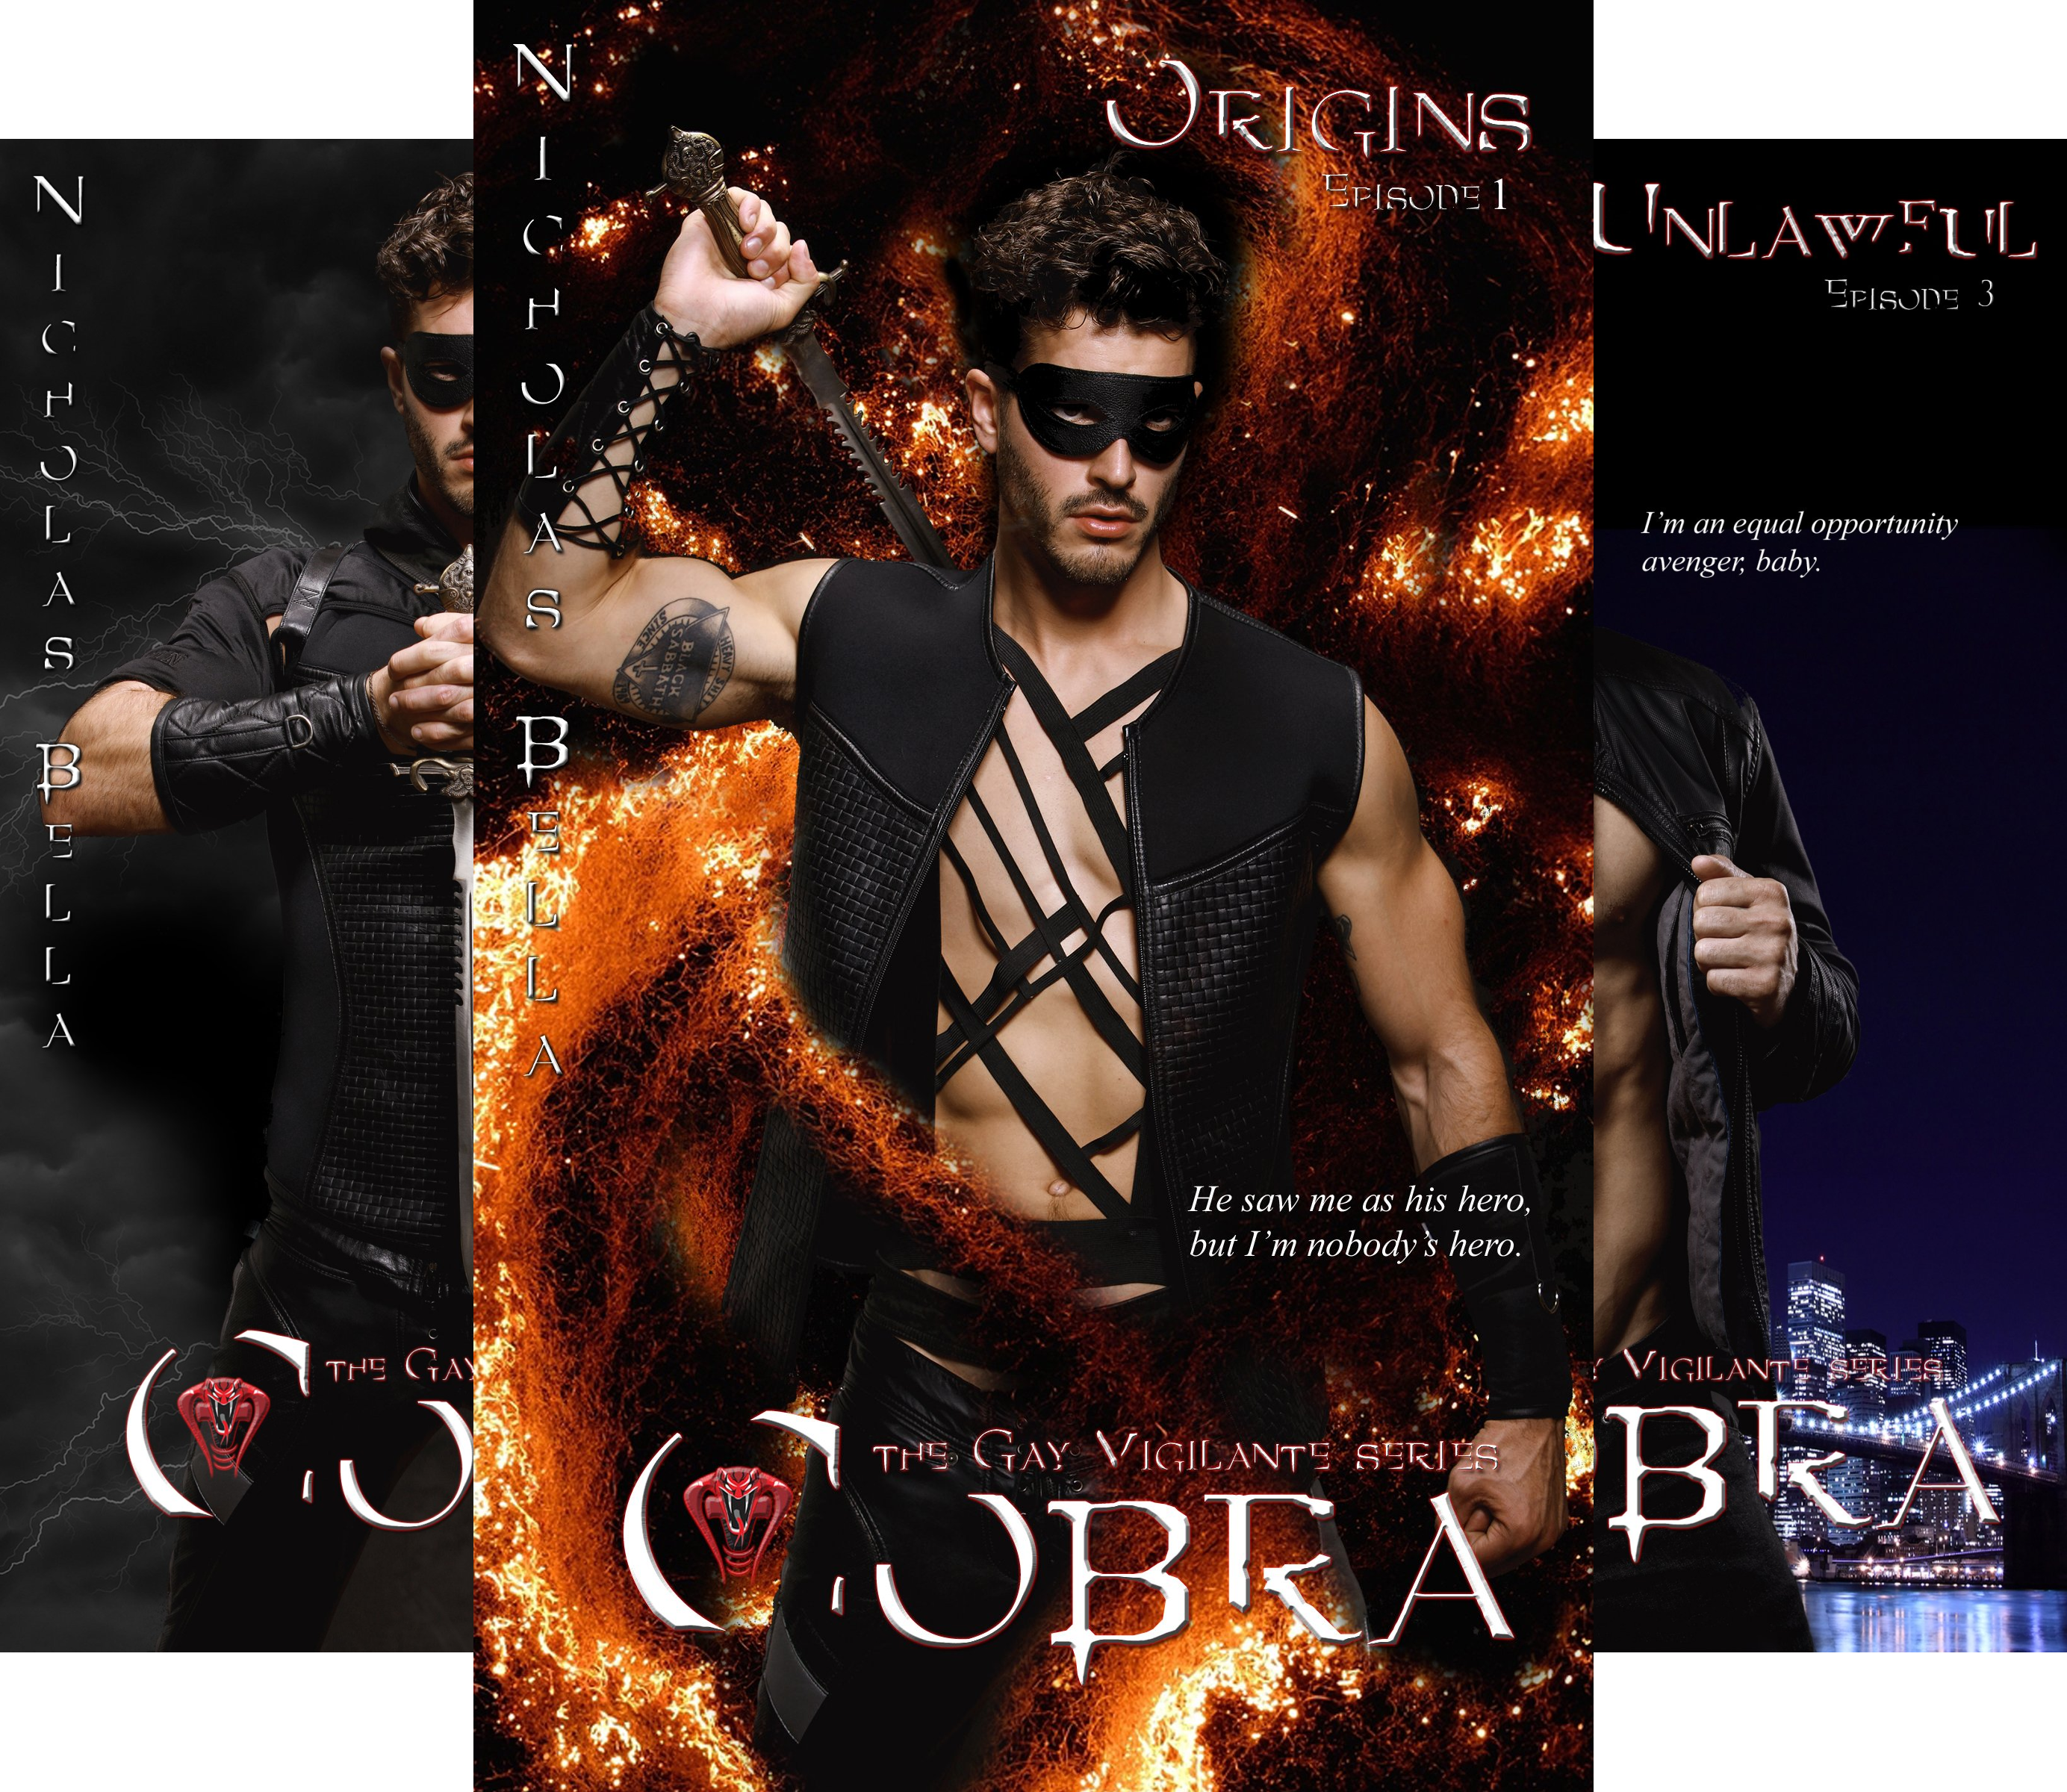 Cobra: The Gay Vigilante Series (4 Book Series)